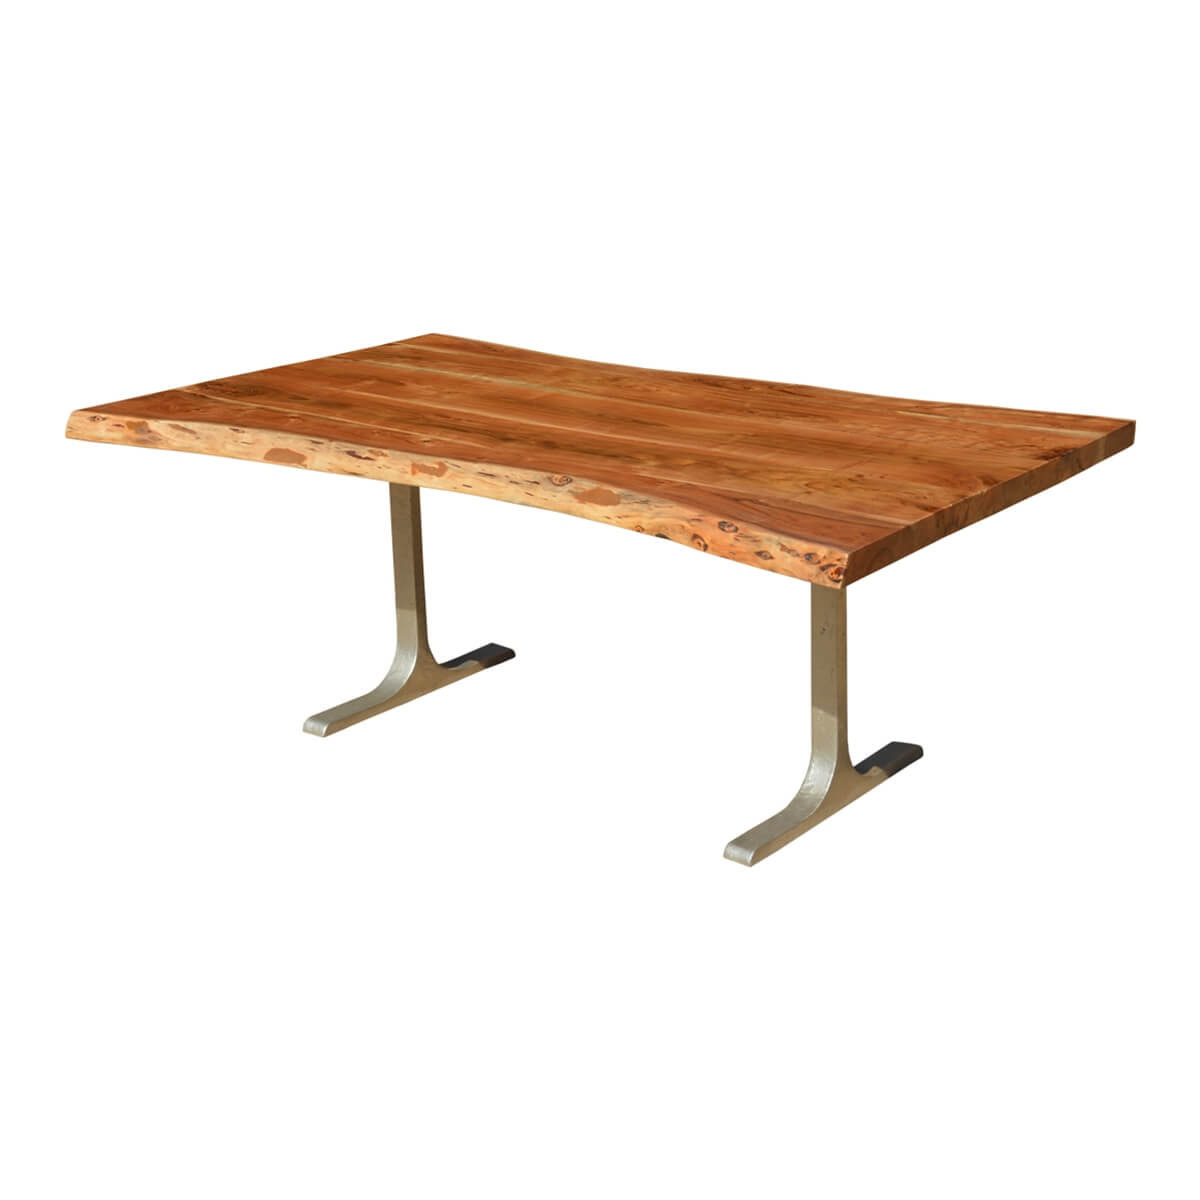 Solid Wood amp Iron Base Santa Fe Live Edge Dining Table : 6998 from www.sierralivingconcepts.com size 1200 x 1200 jpeg 159kB